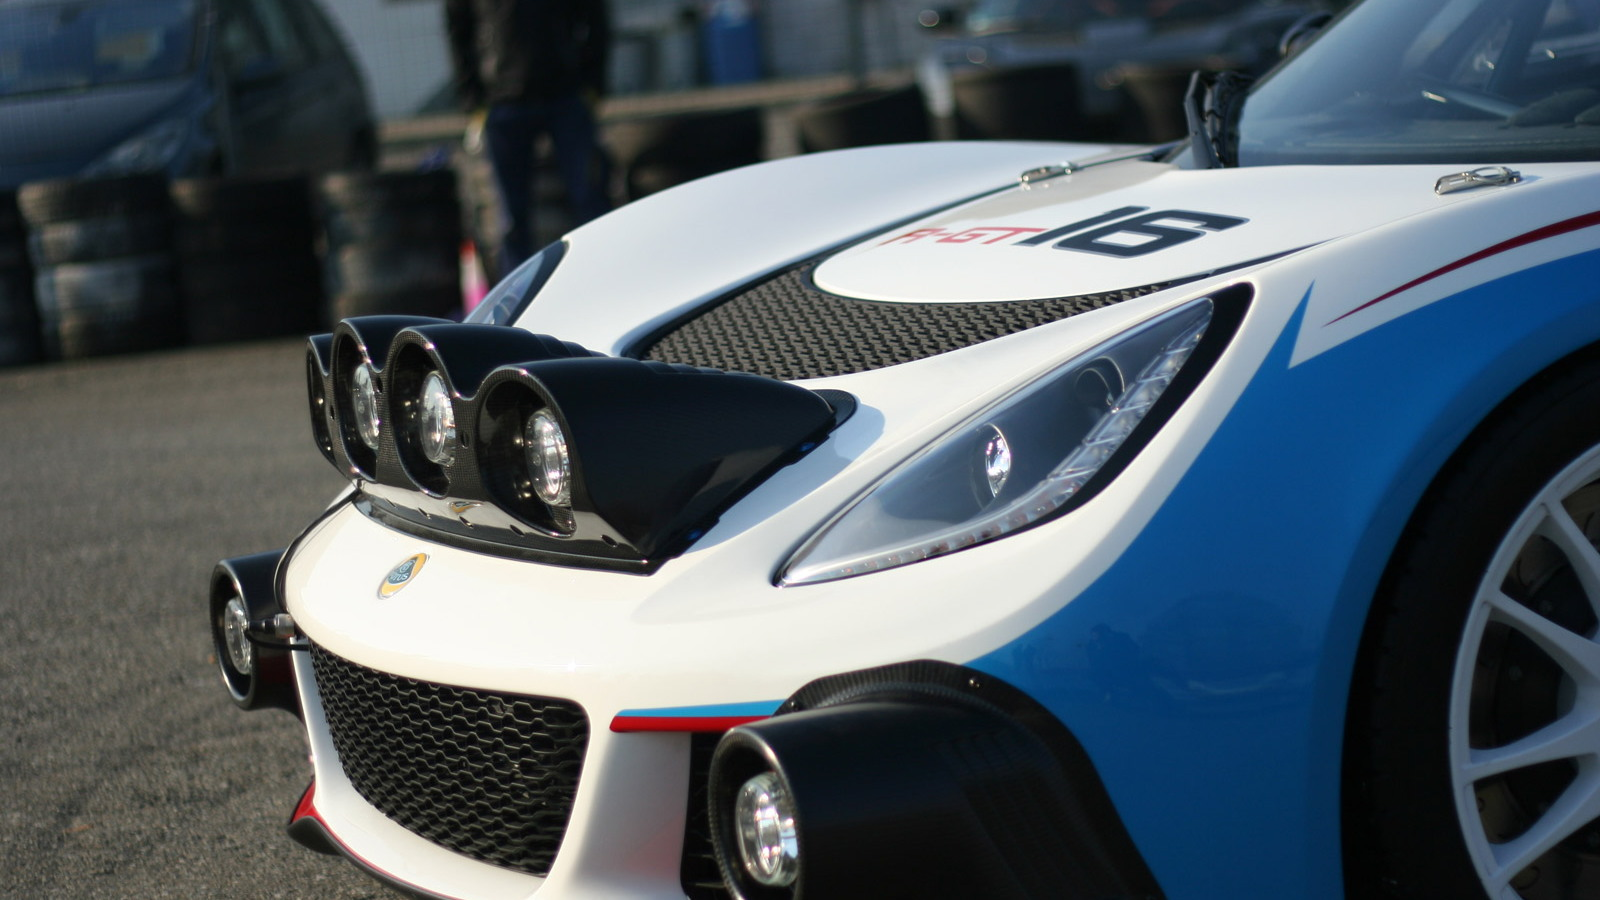 Lotus Exige R-GT rally car first shakedown